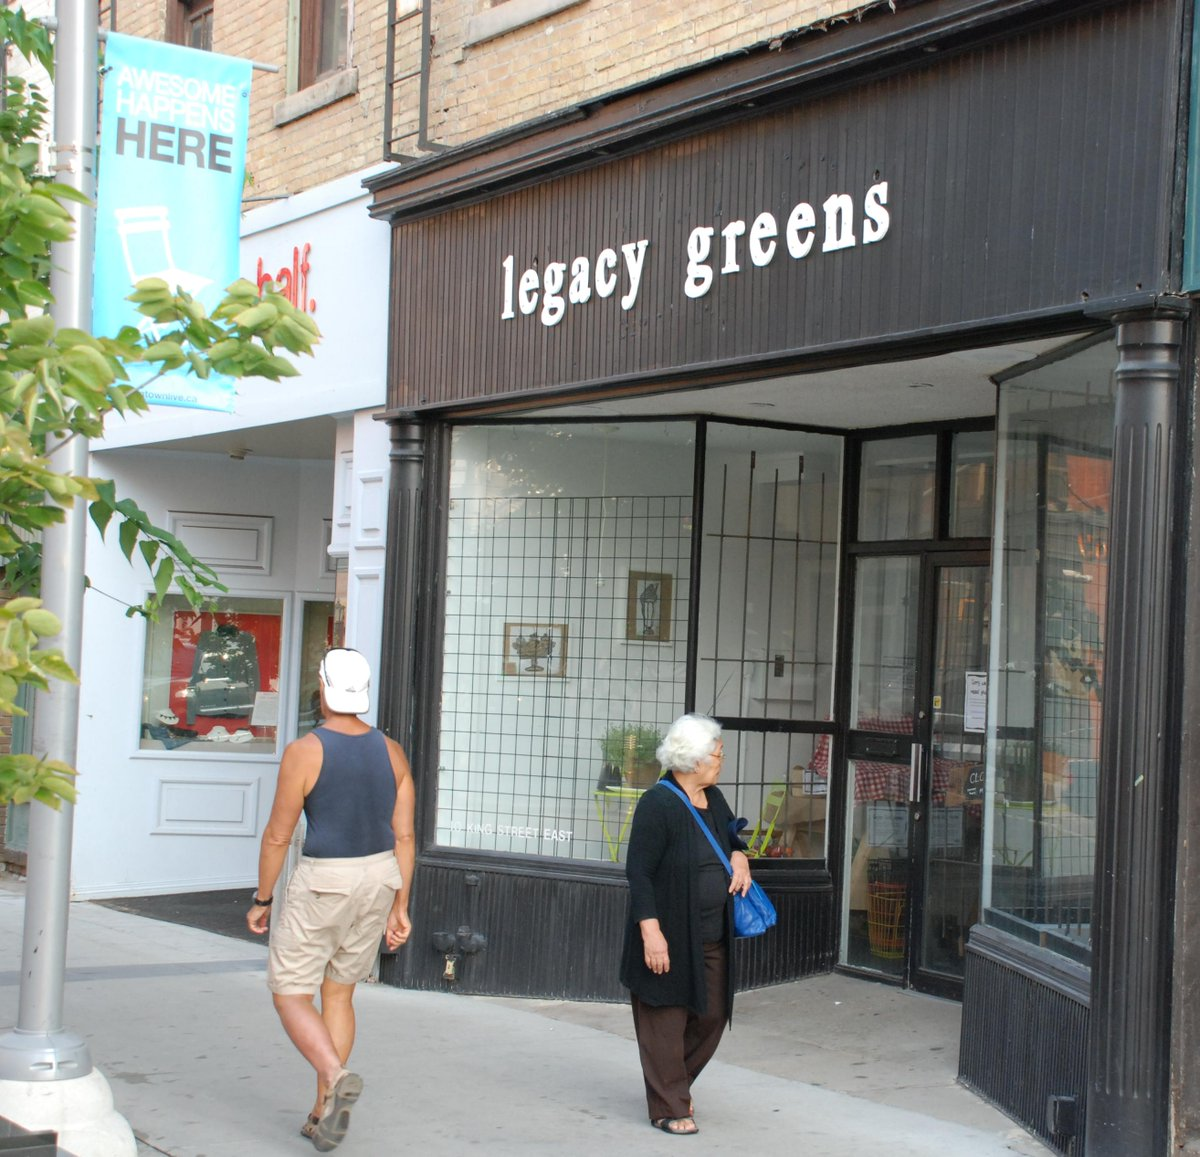 Legacy Greens now open King at Queen @DTKitchener http://t.co/NHKxGauZfx #greengrocer #vegetables #local http://t.co/jBq3rfSvwl